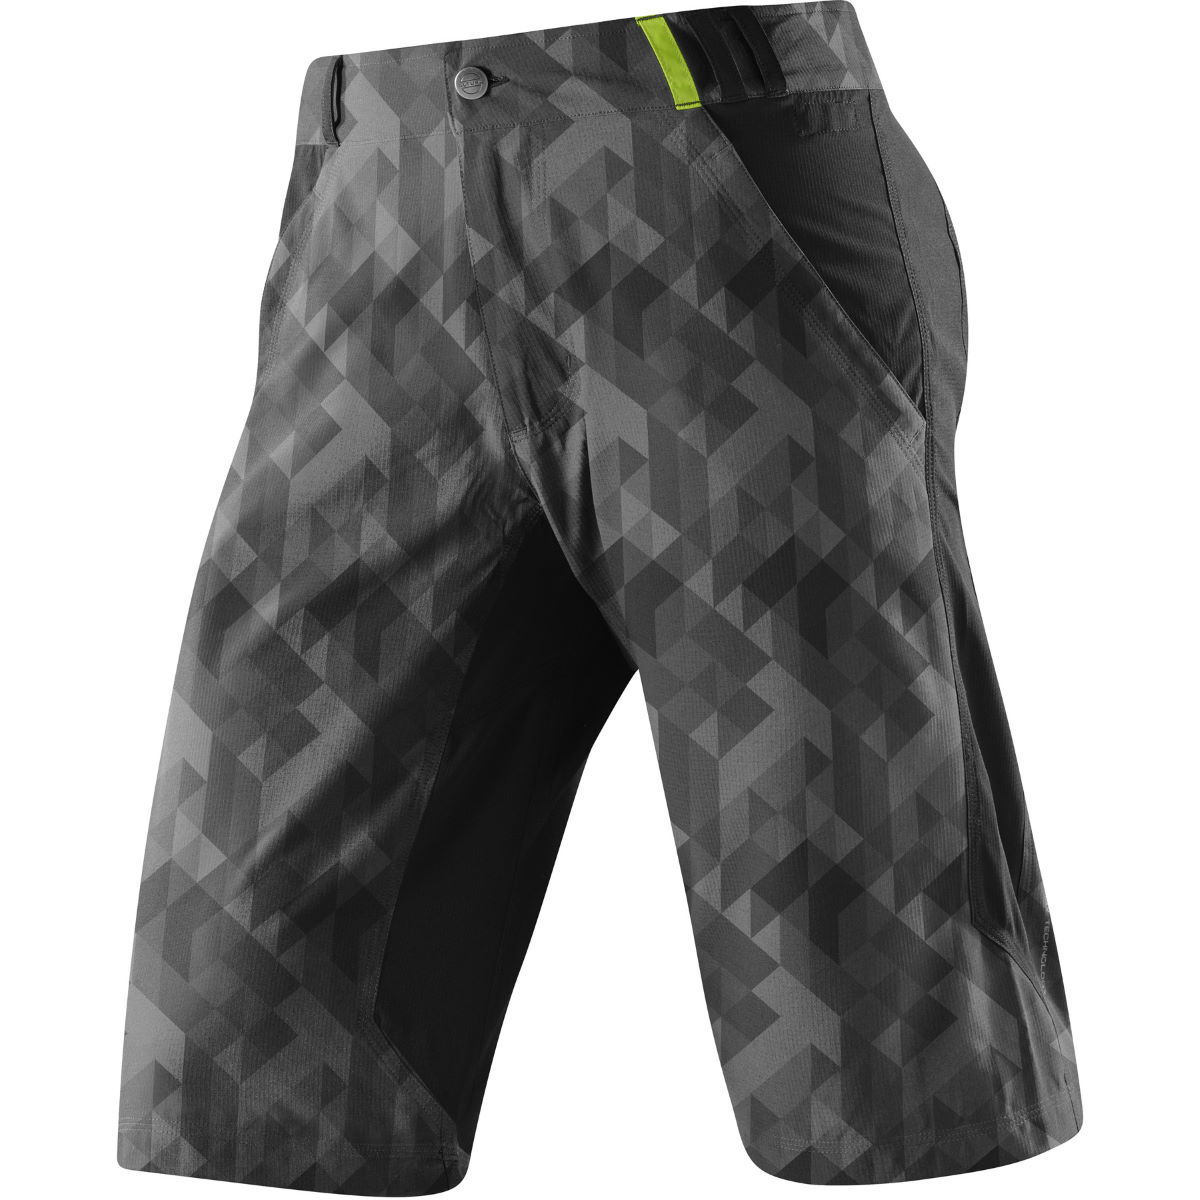 Altura Apache Shorts   Baggy Shorts